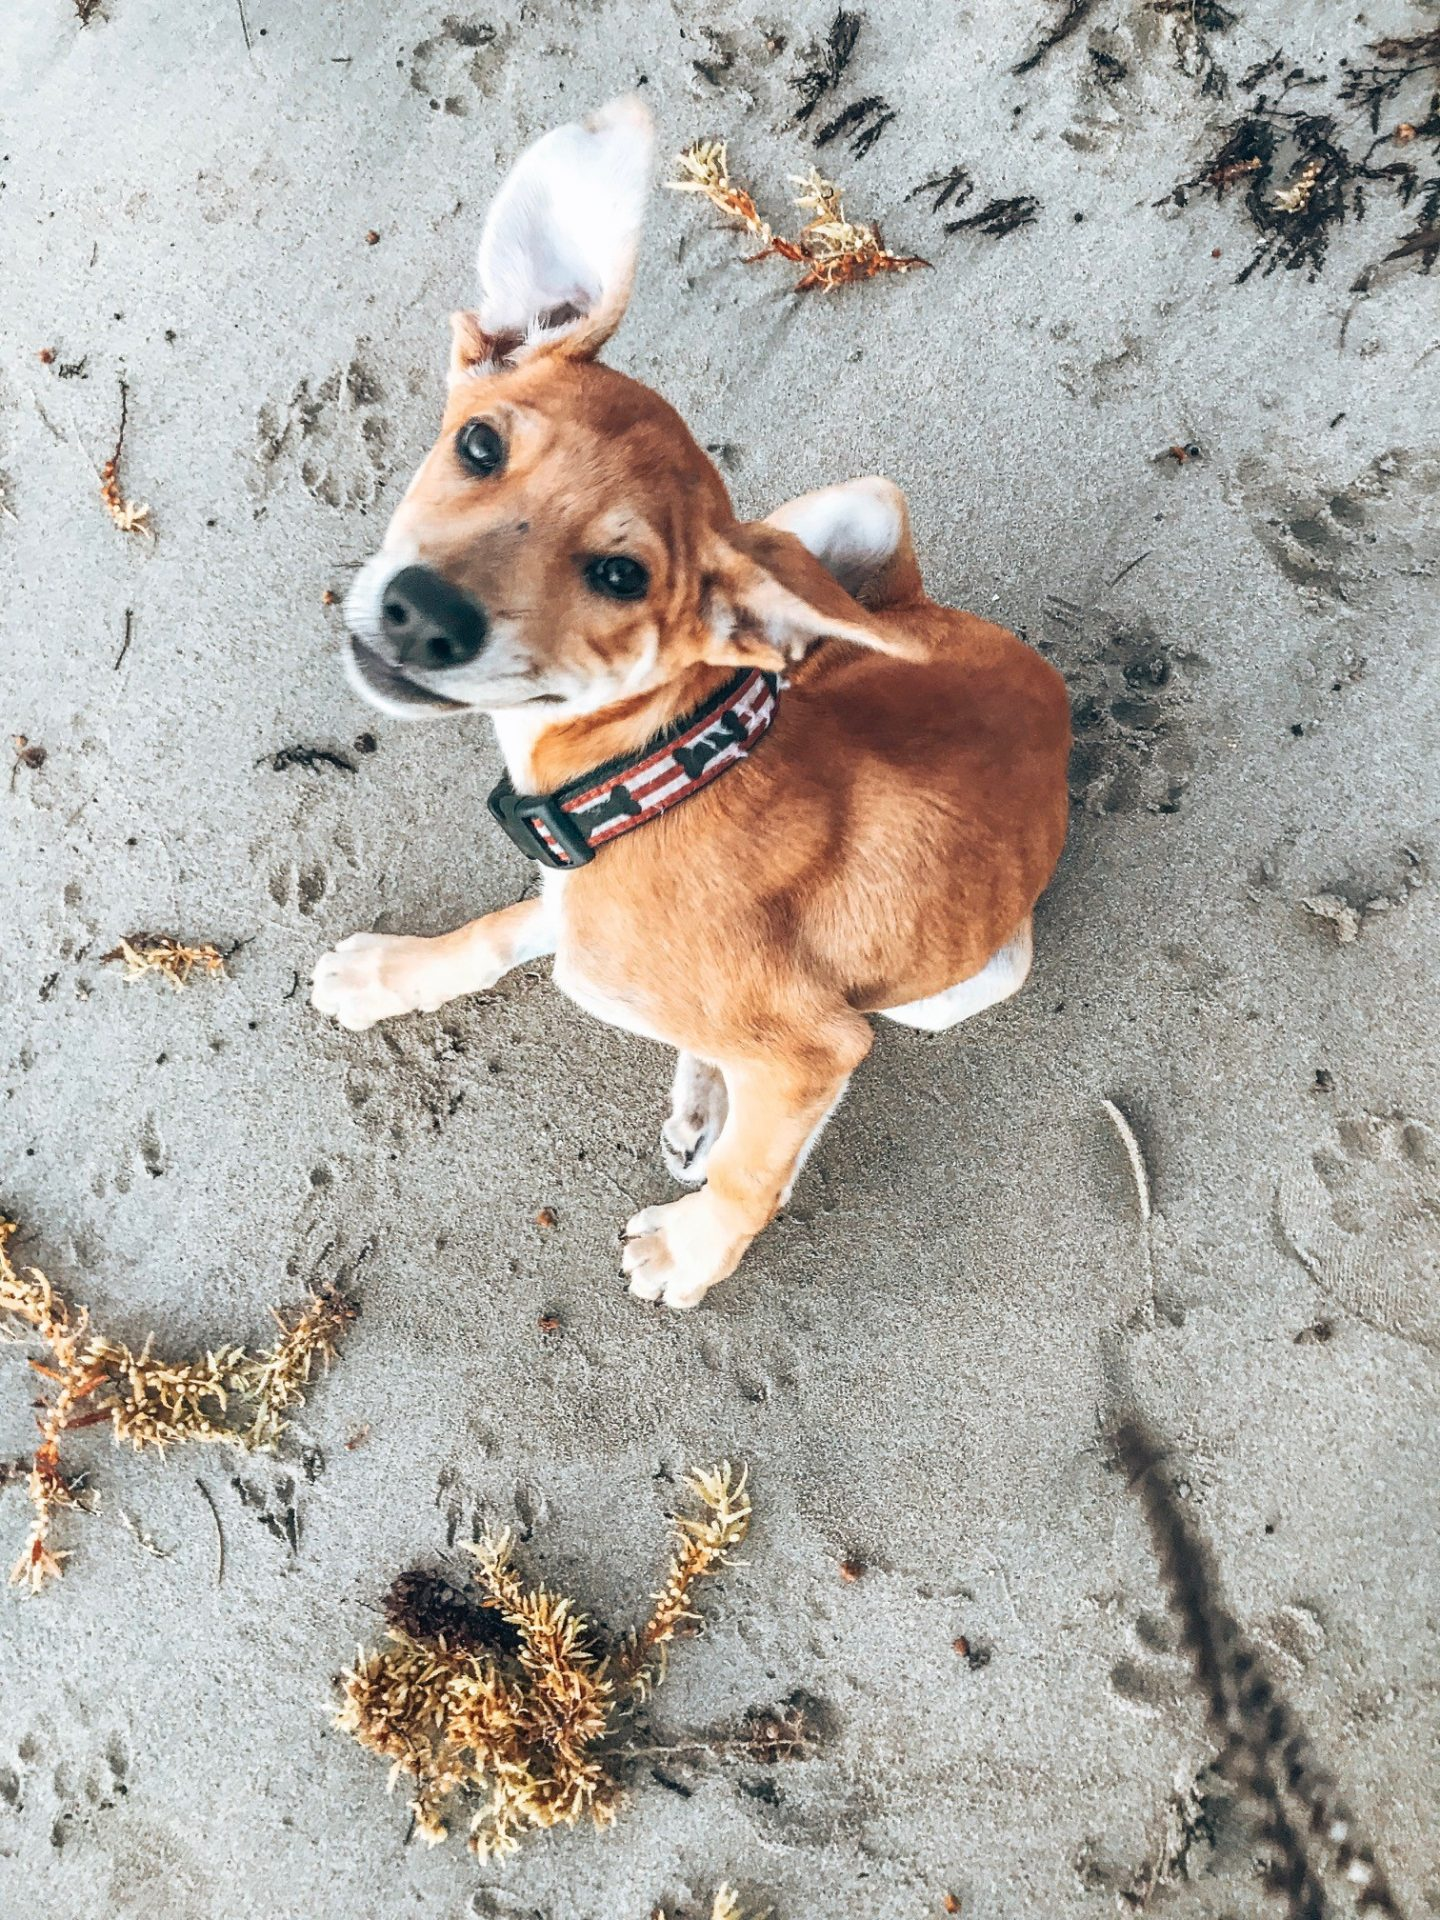 Fostering Island Pets - Animal Charities rely on Foster homes before transporting these dogs and cats to the United States